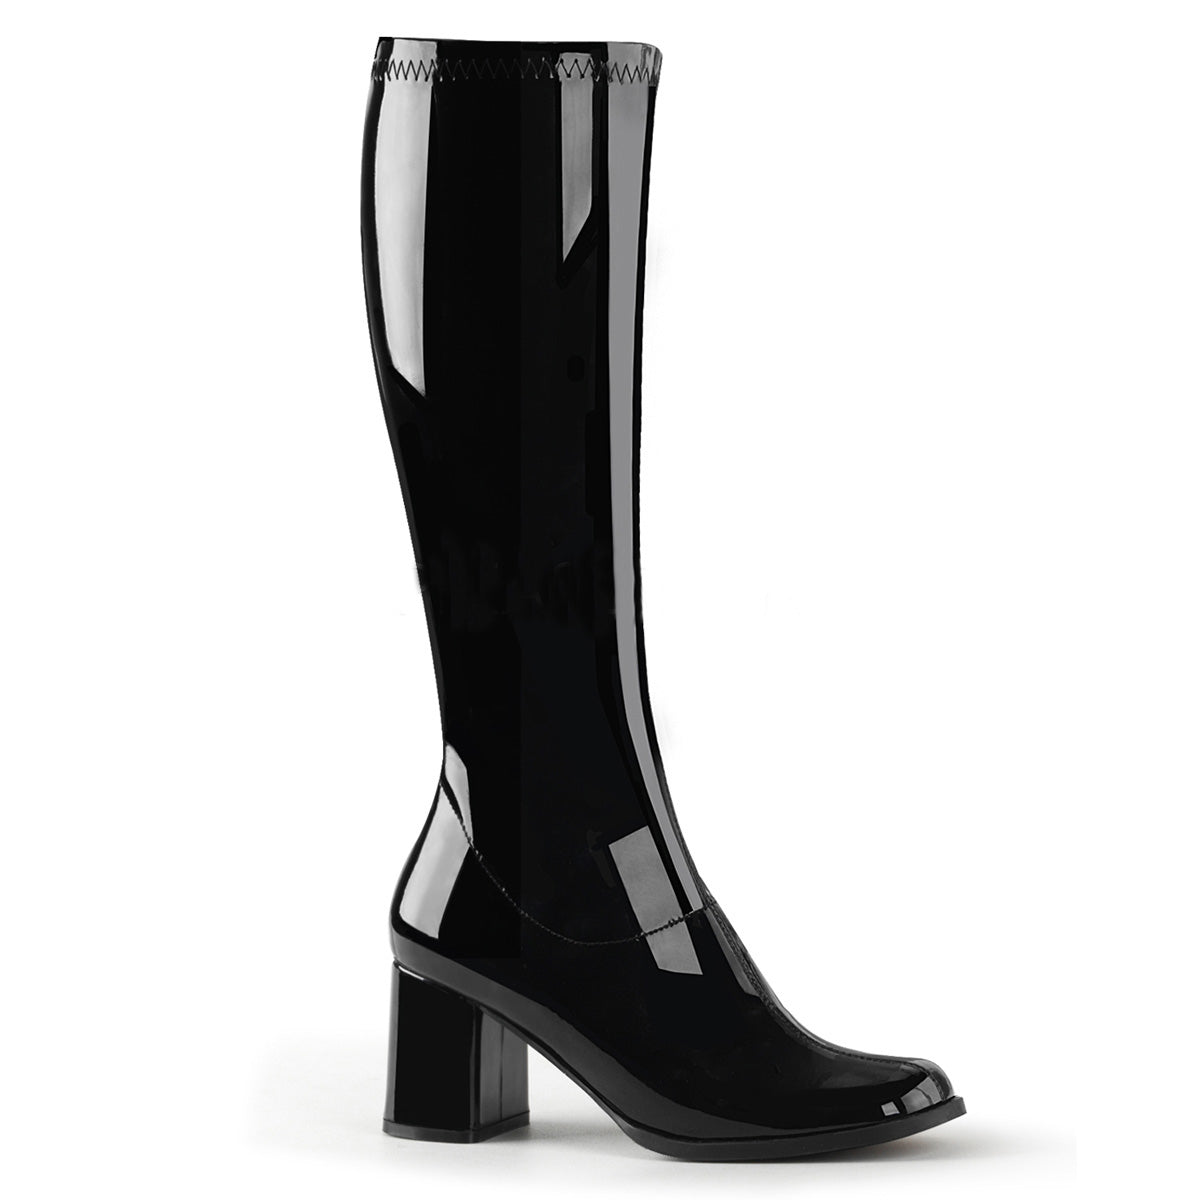 Black Patent GoGo Boot (Gogo 300)